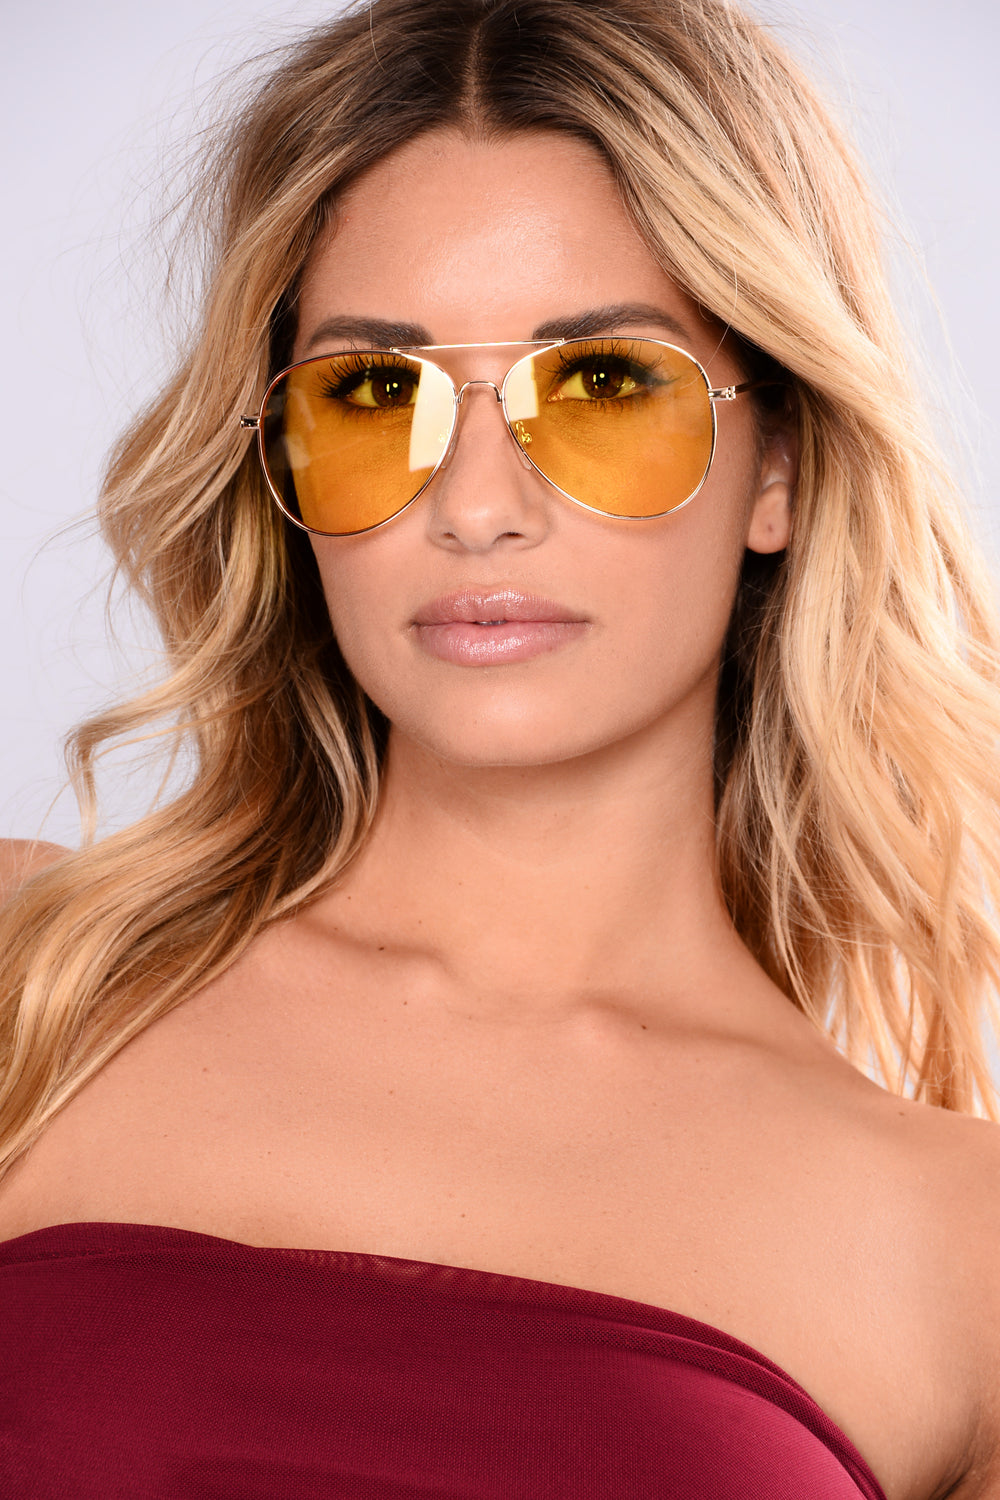 Tinted Love Sunglasses - Yellow